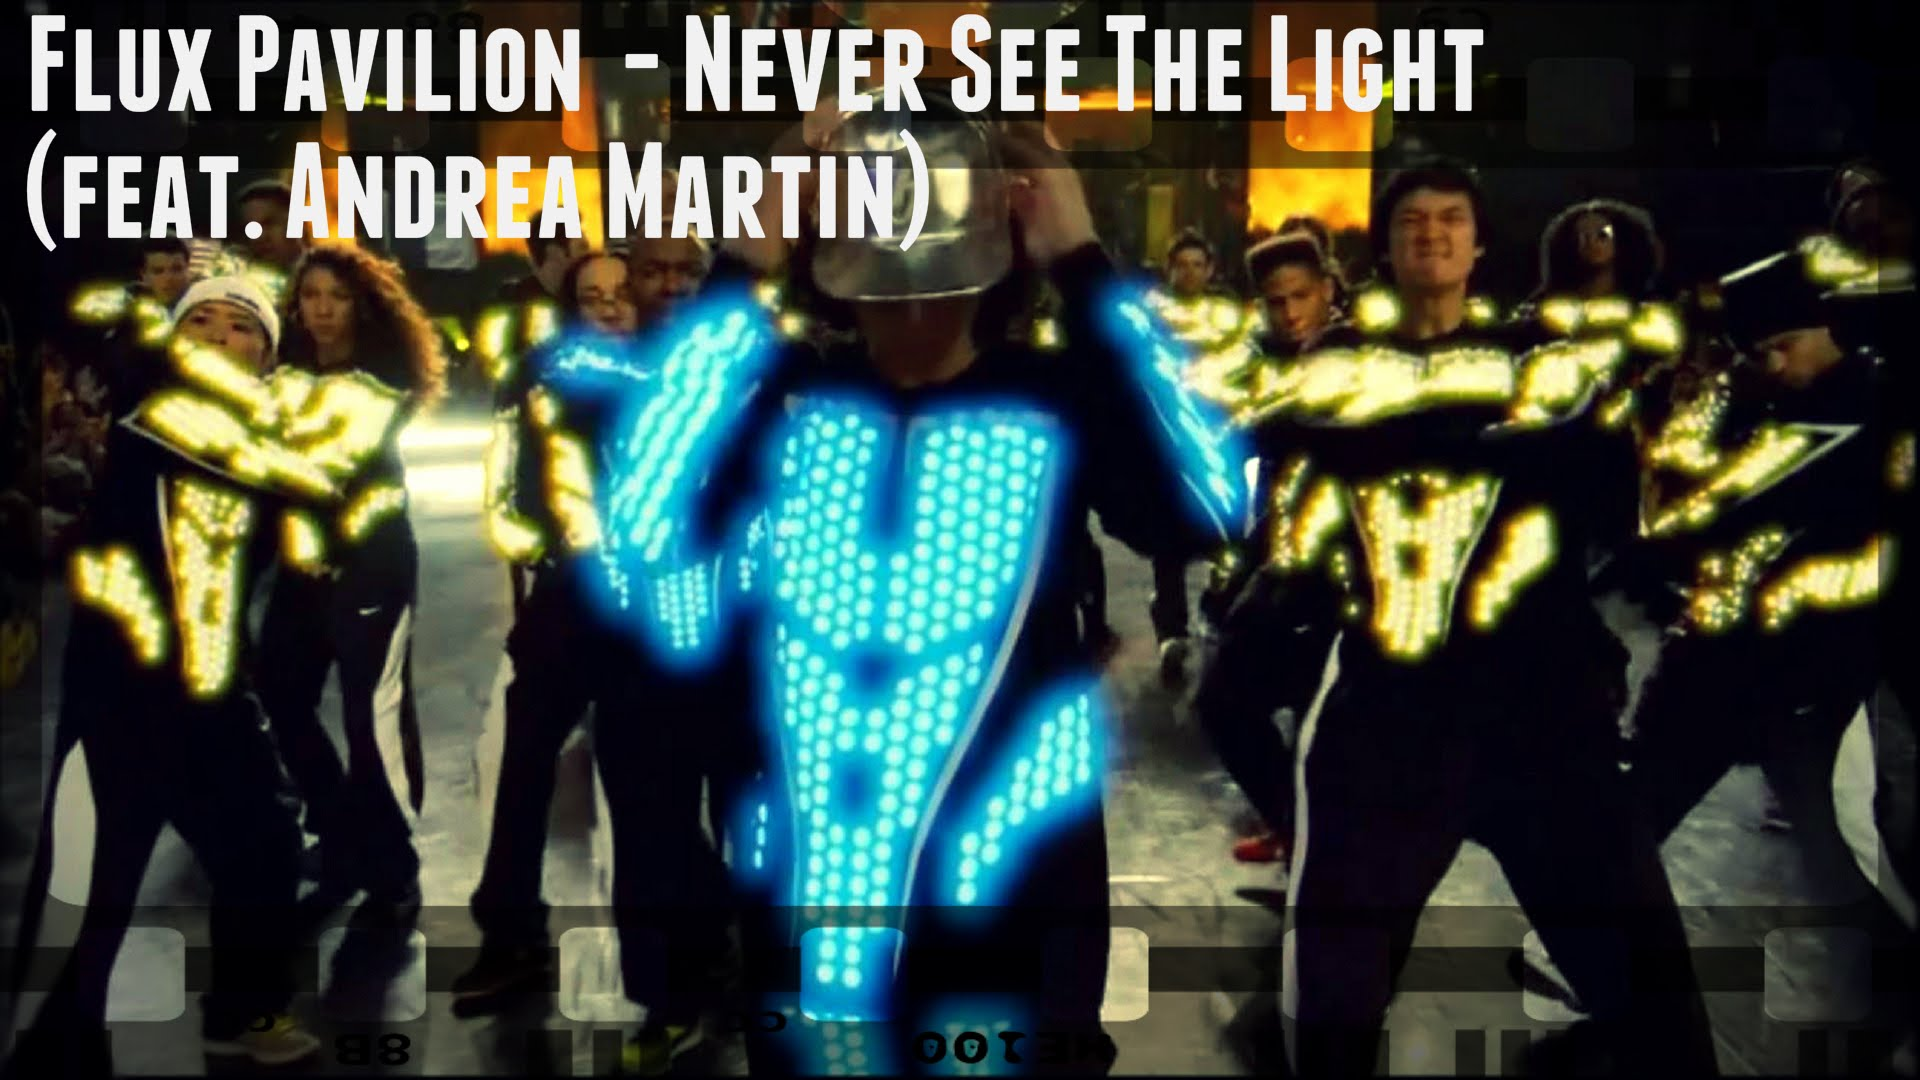 Flux Pavilion feat. Andrea Martin - Never See The Light